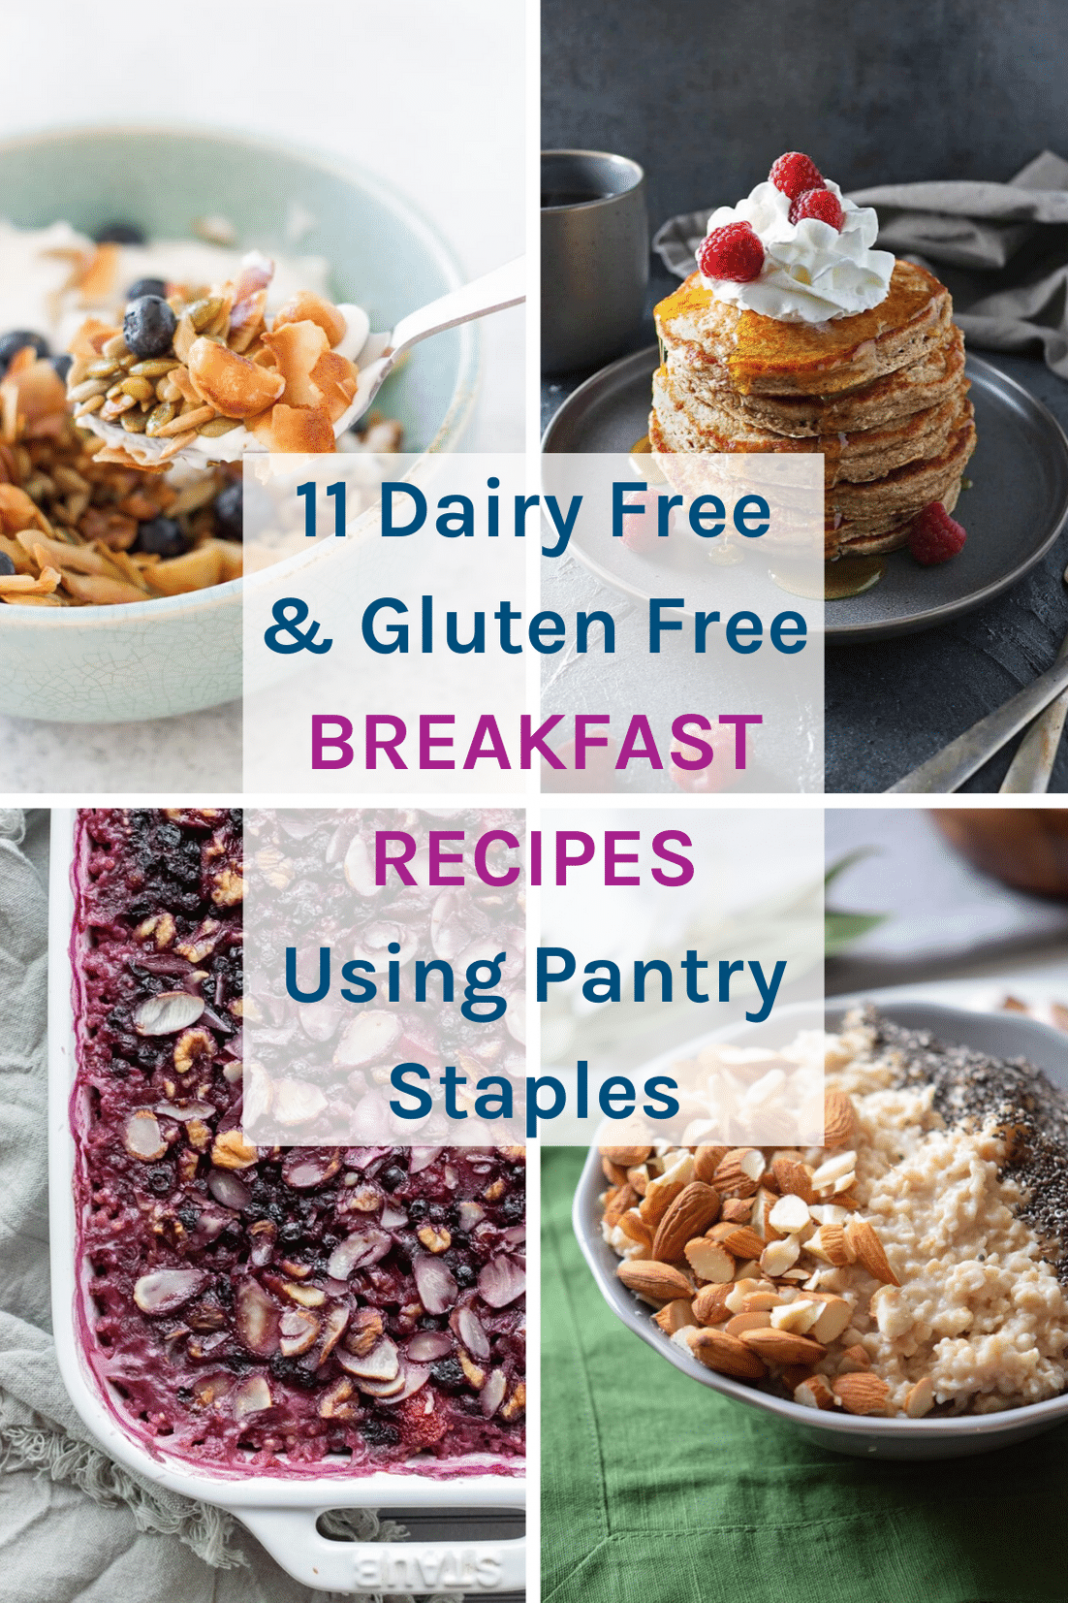 10 Gluten Free & Dairy Free Breakfast Recipes Using Pantry Staples ...